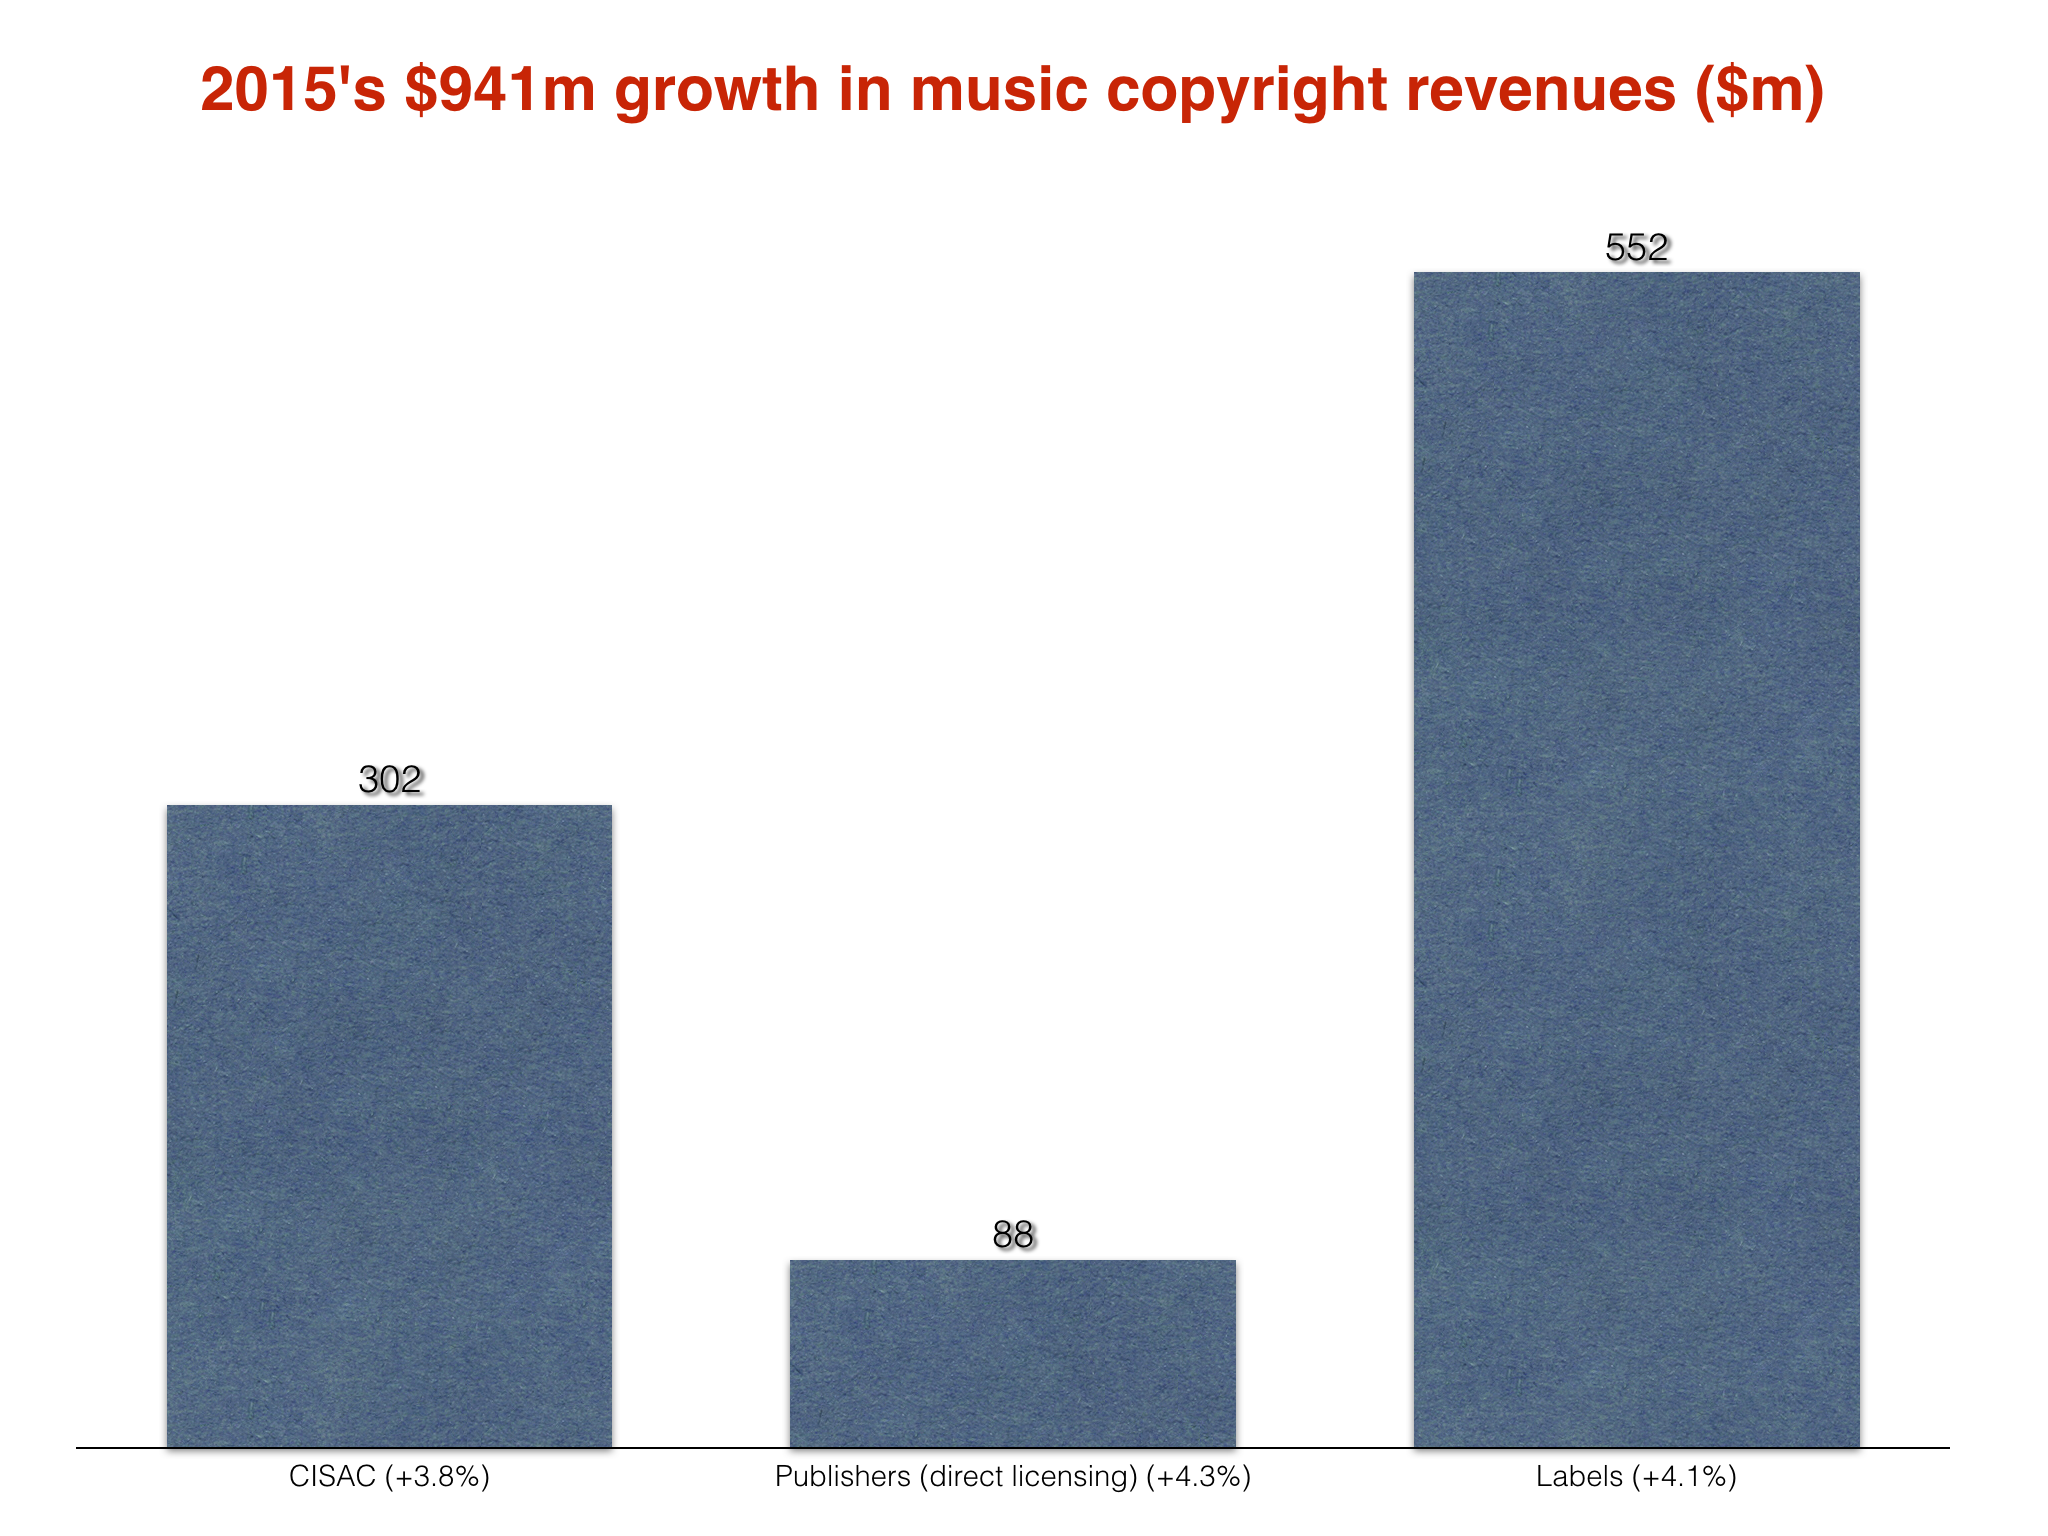 copyright and global music industry essay Digital music and pirated downloads nearly destroyed the industry, the argument goes, but now streaming technology is being credited with saving it.